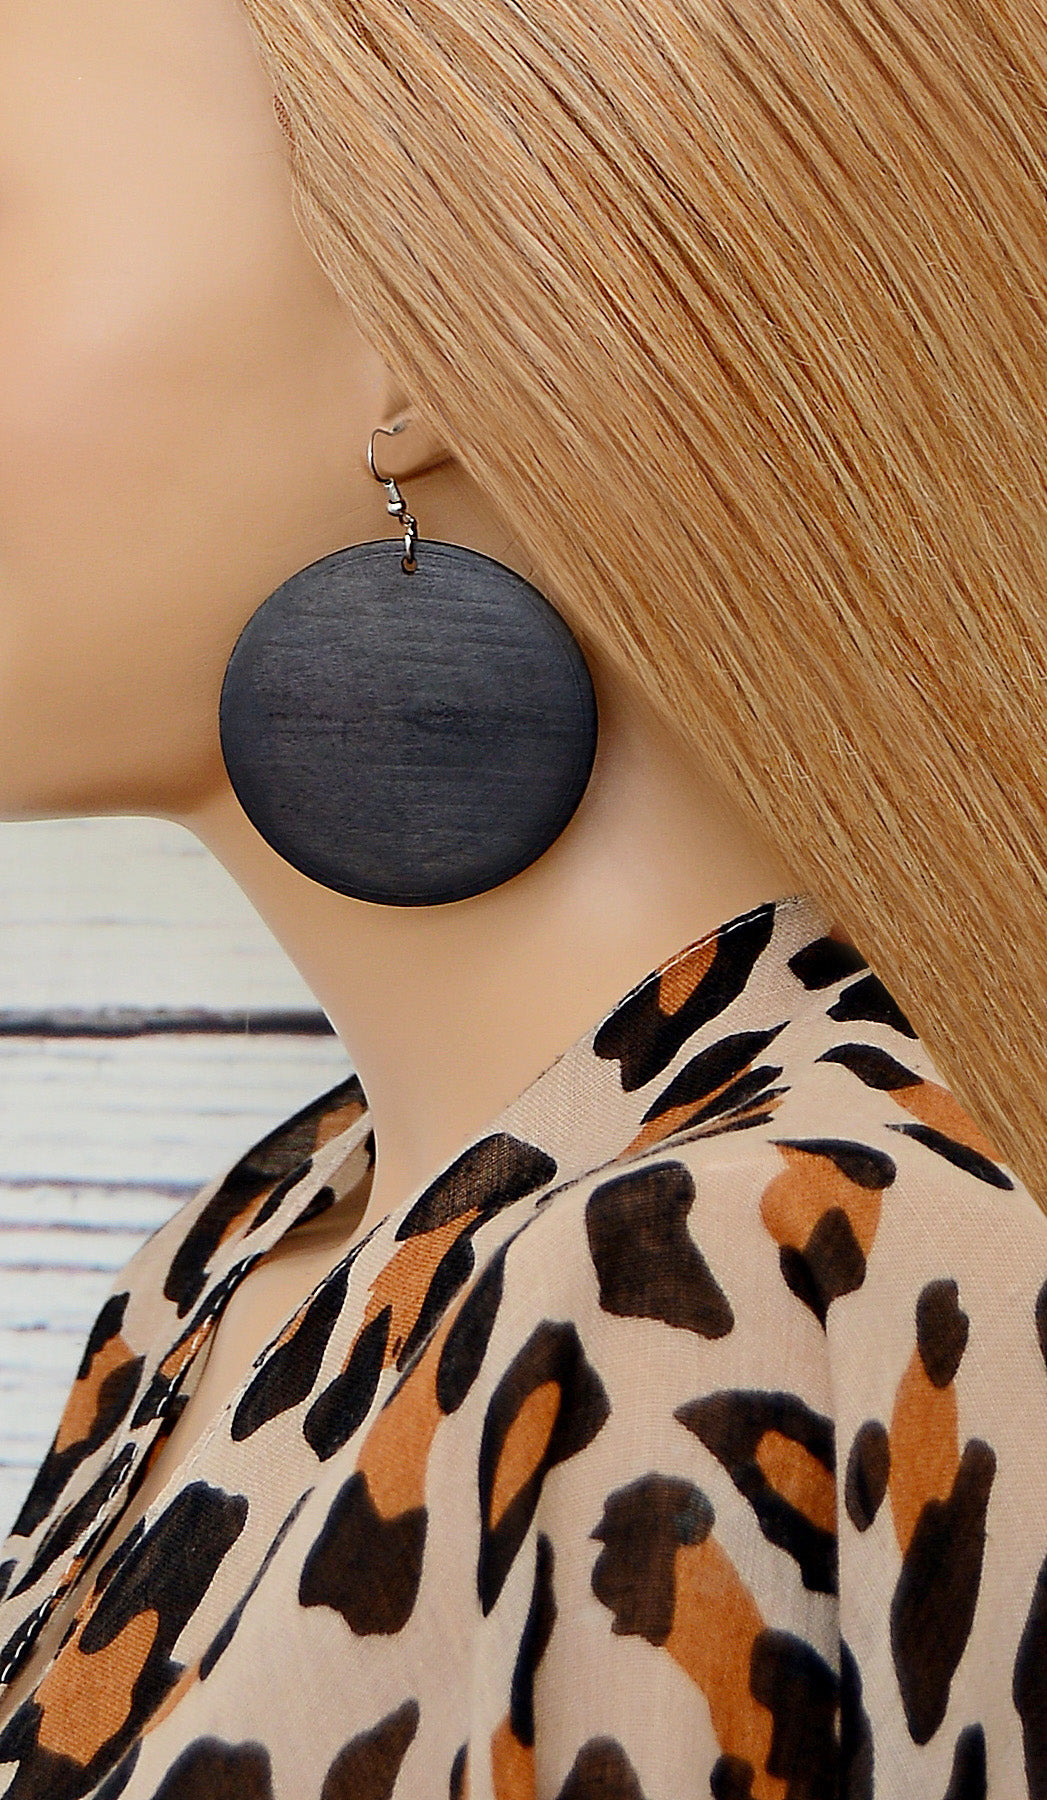 Women's Black Circle Wooden Fashion Earrings